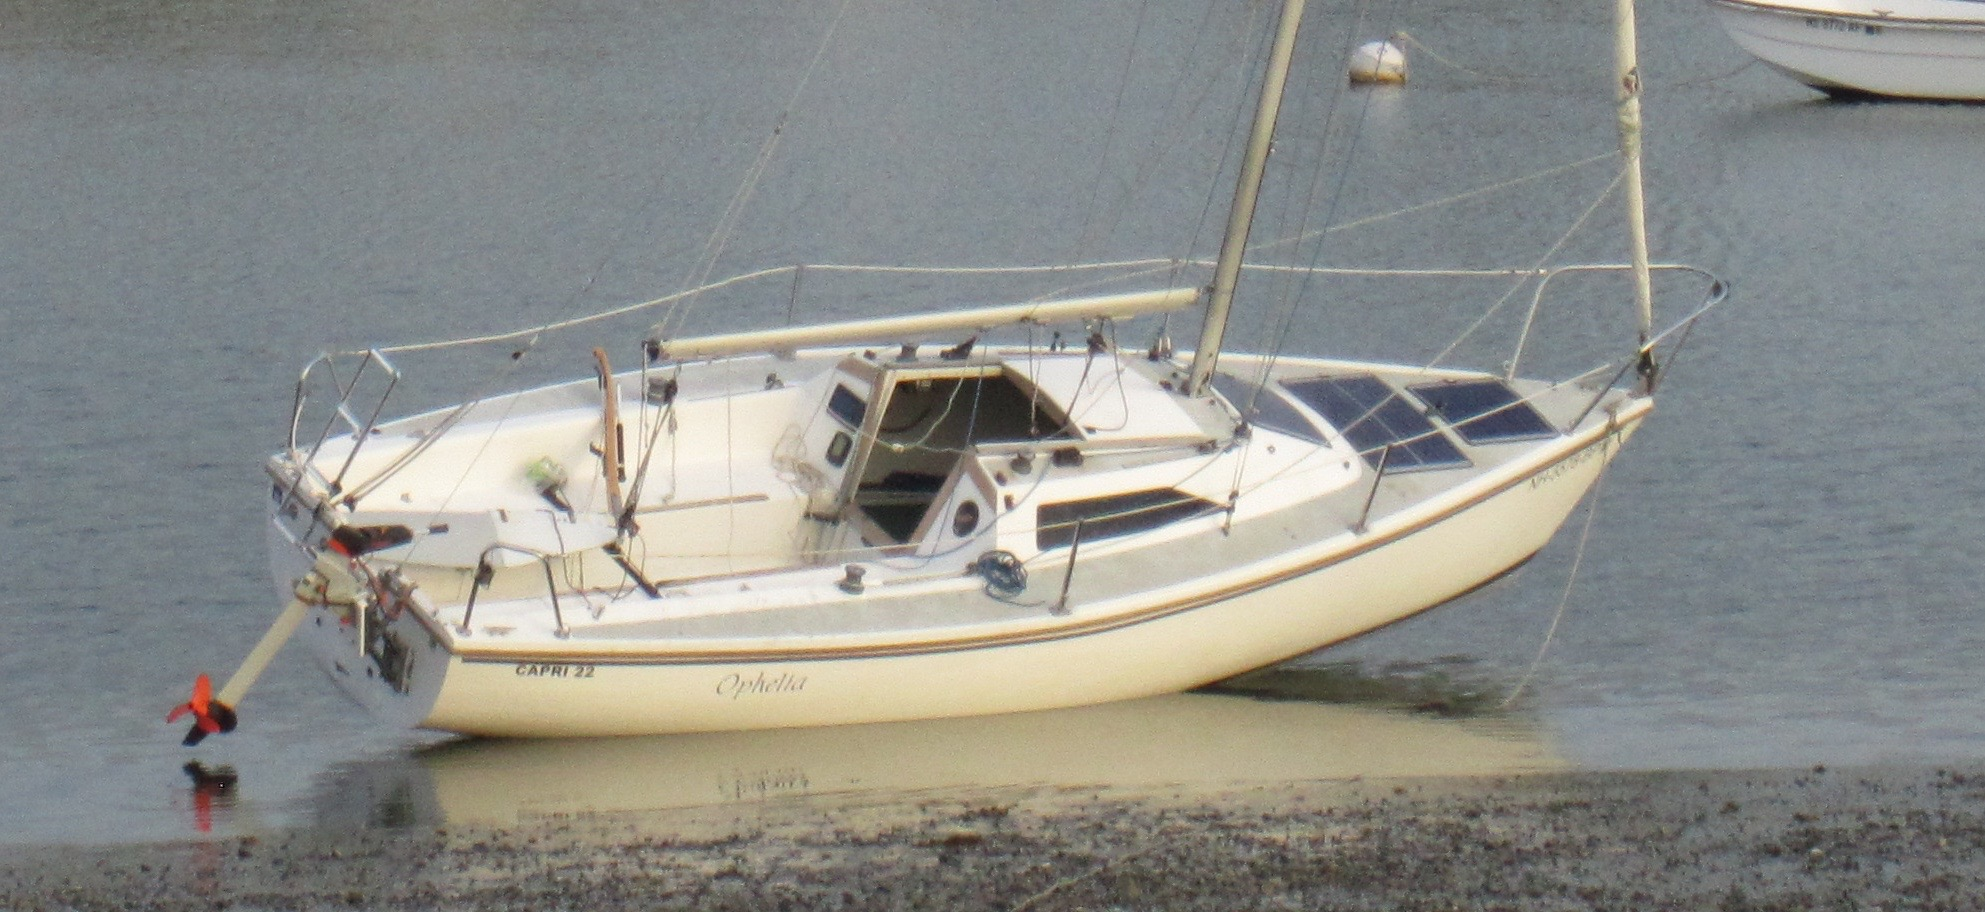 New To Me Capri 22 Owner Sailboatowners Com Forums